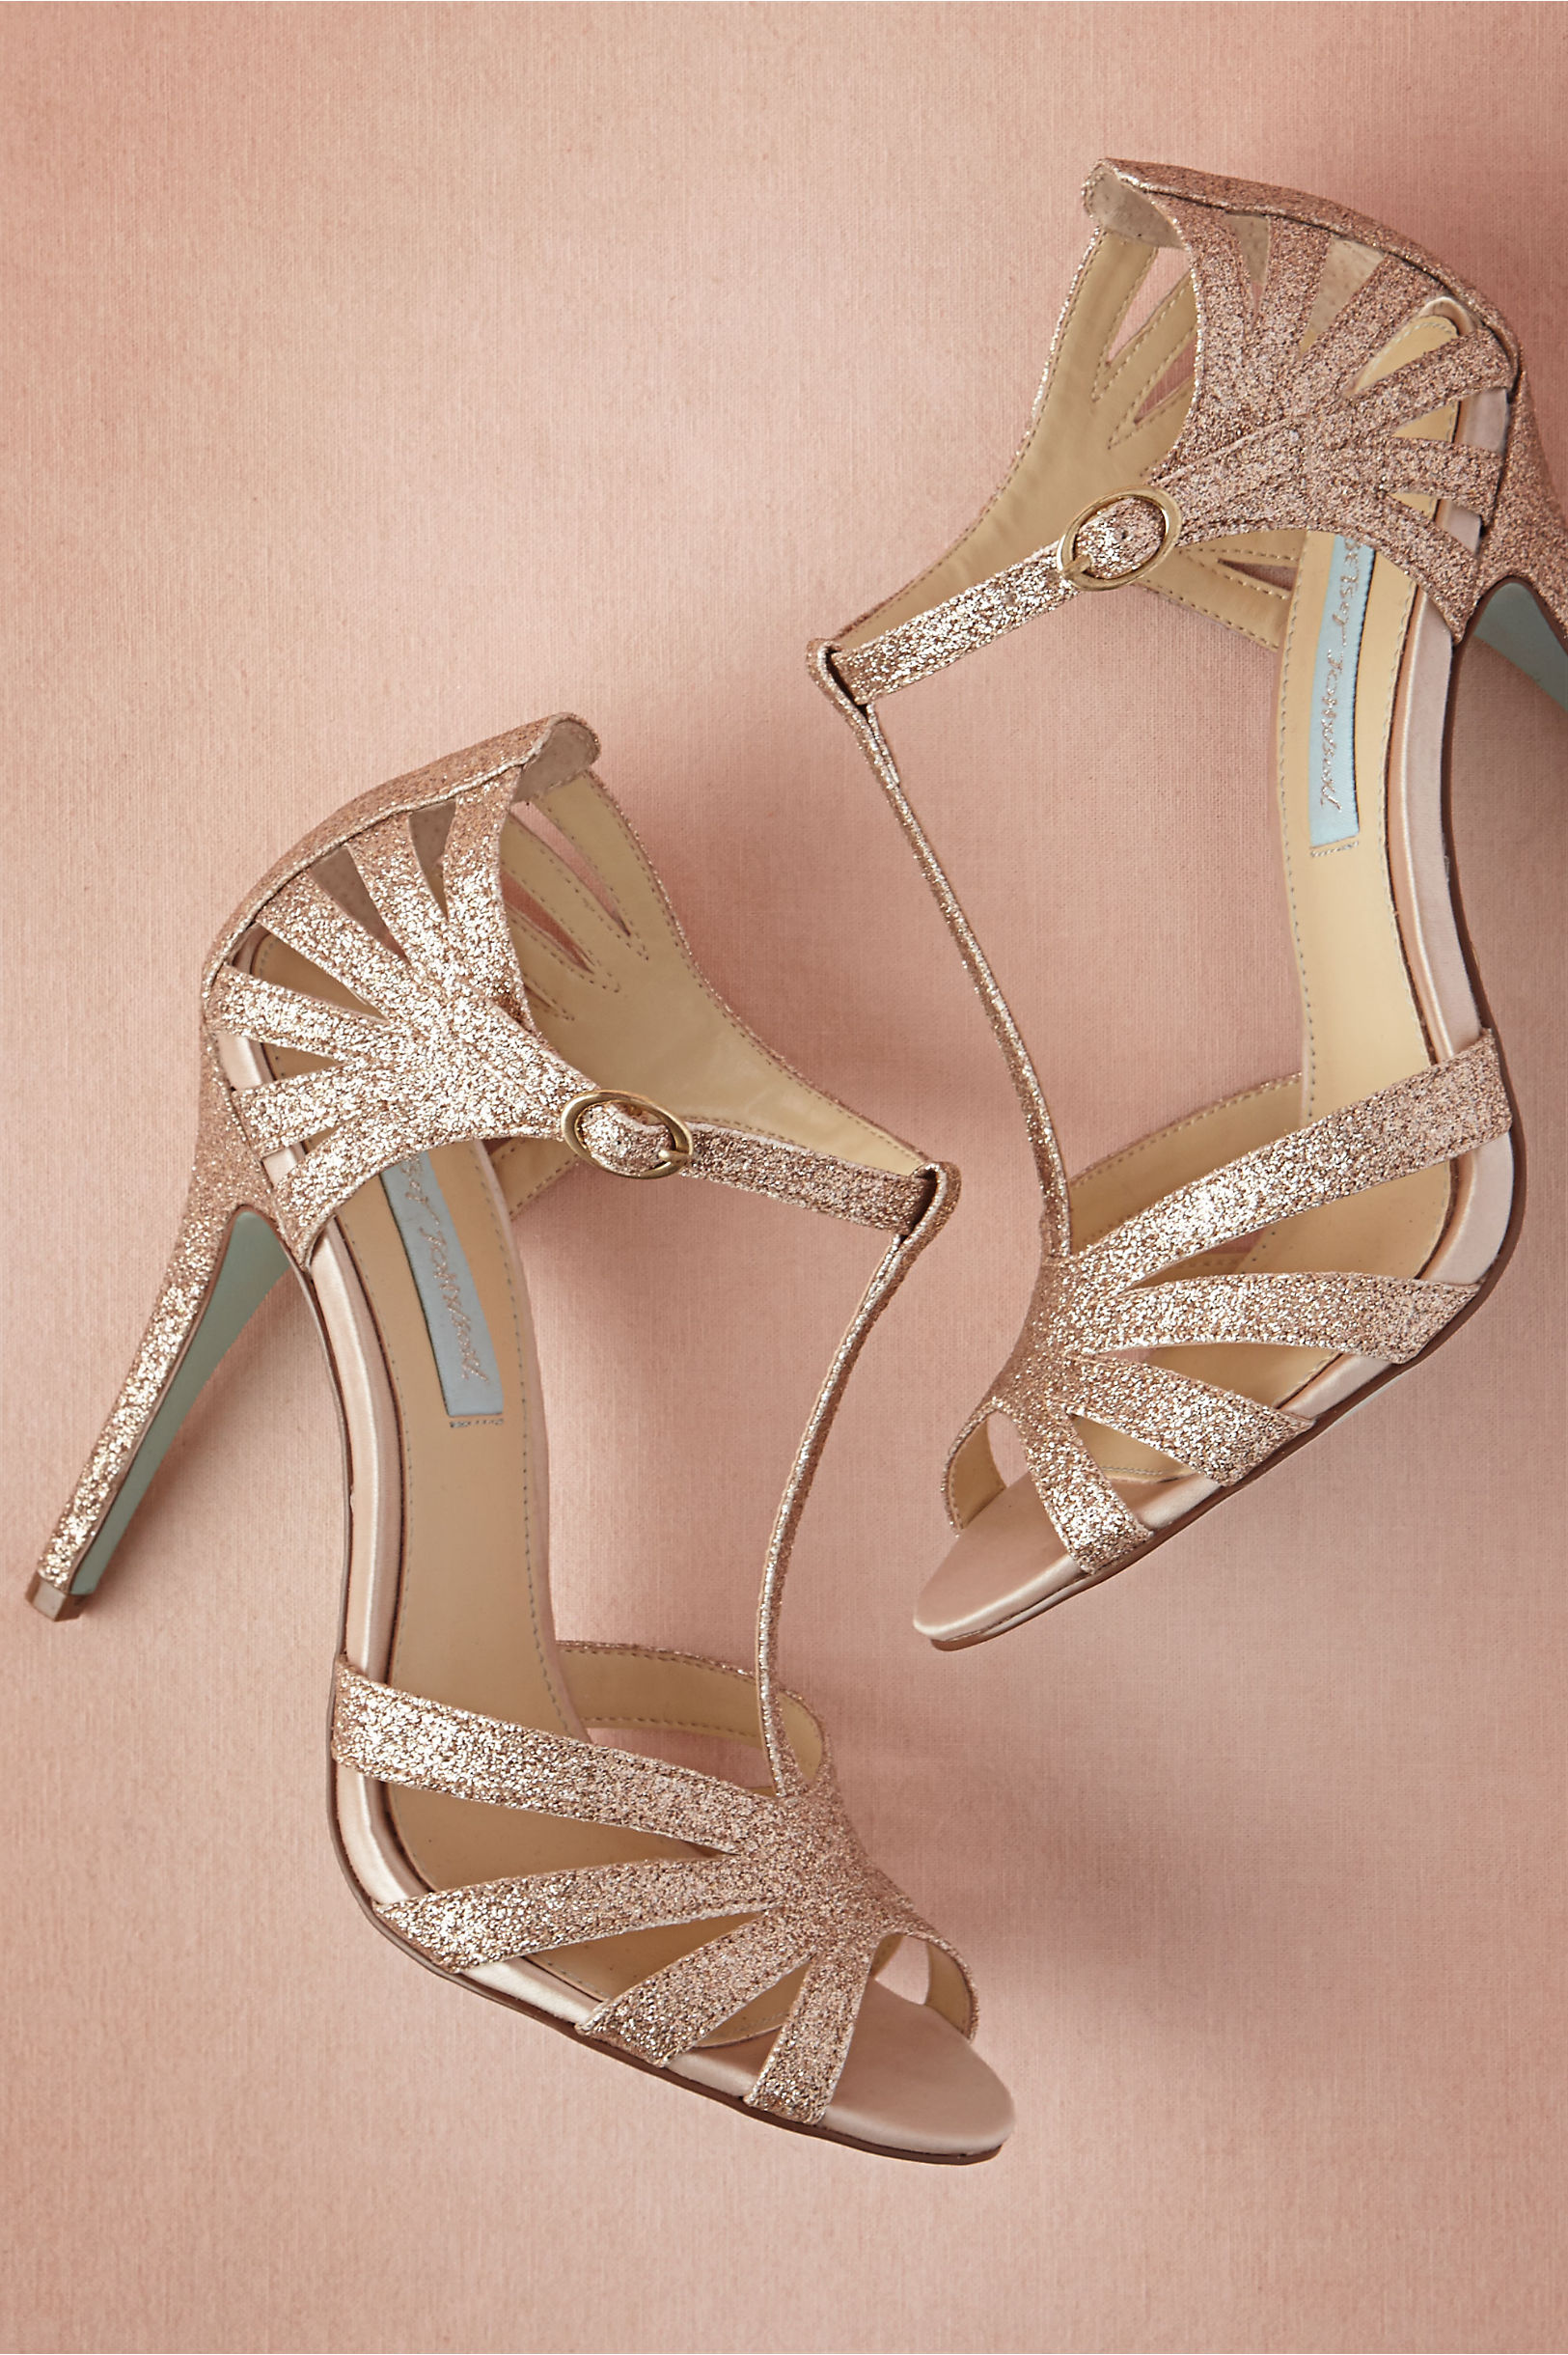 Stardust Heels in Sale | BHLDN